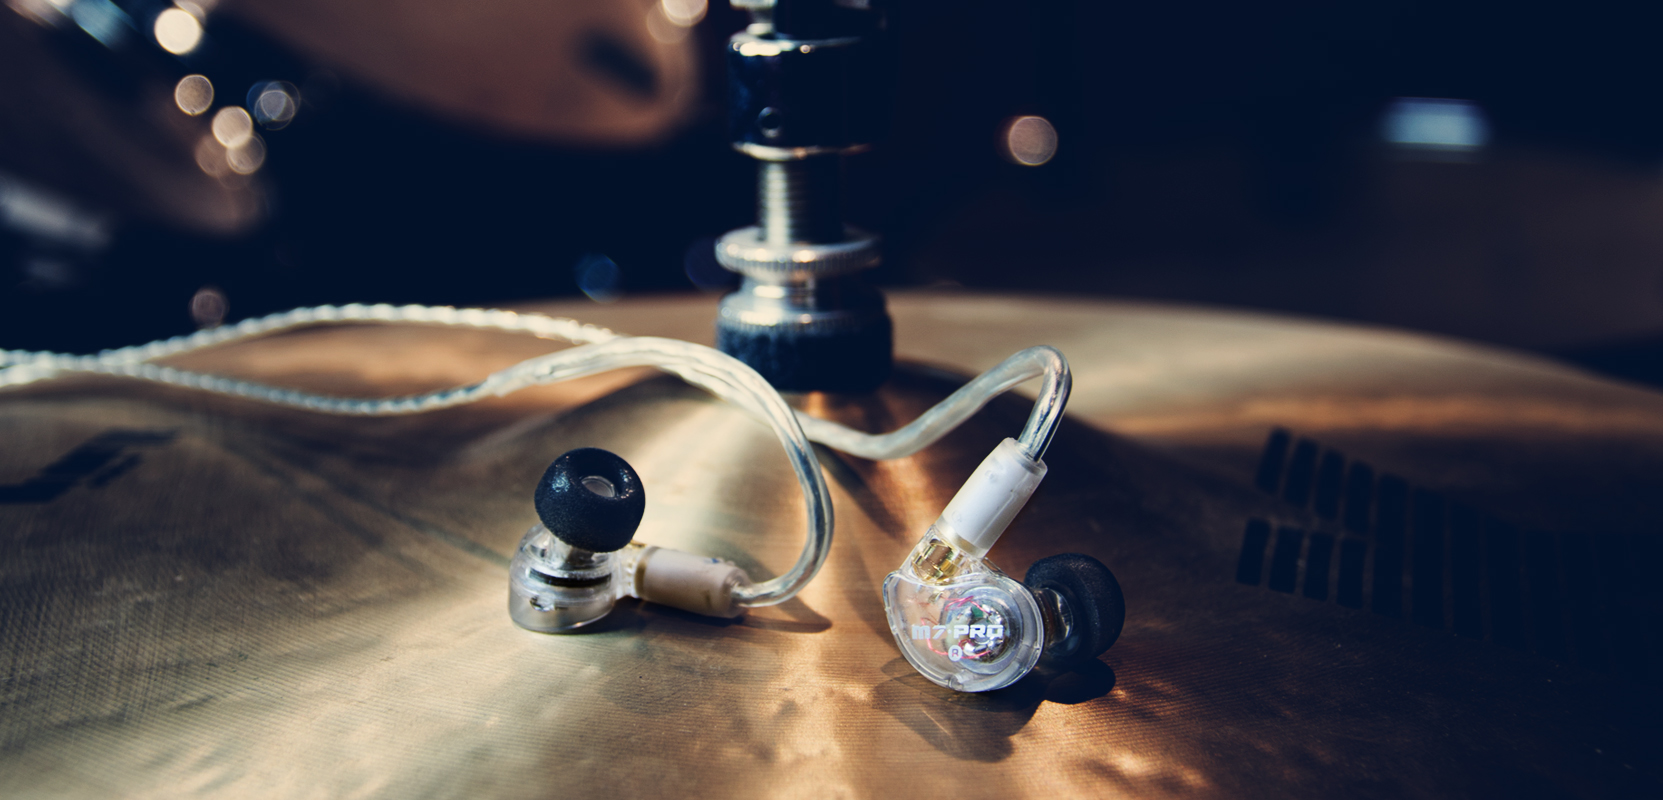 M7 PRO IEMs on a set of drums and cymbals